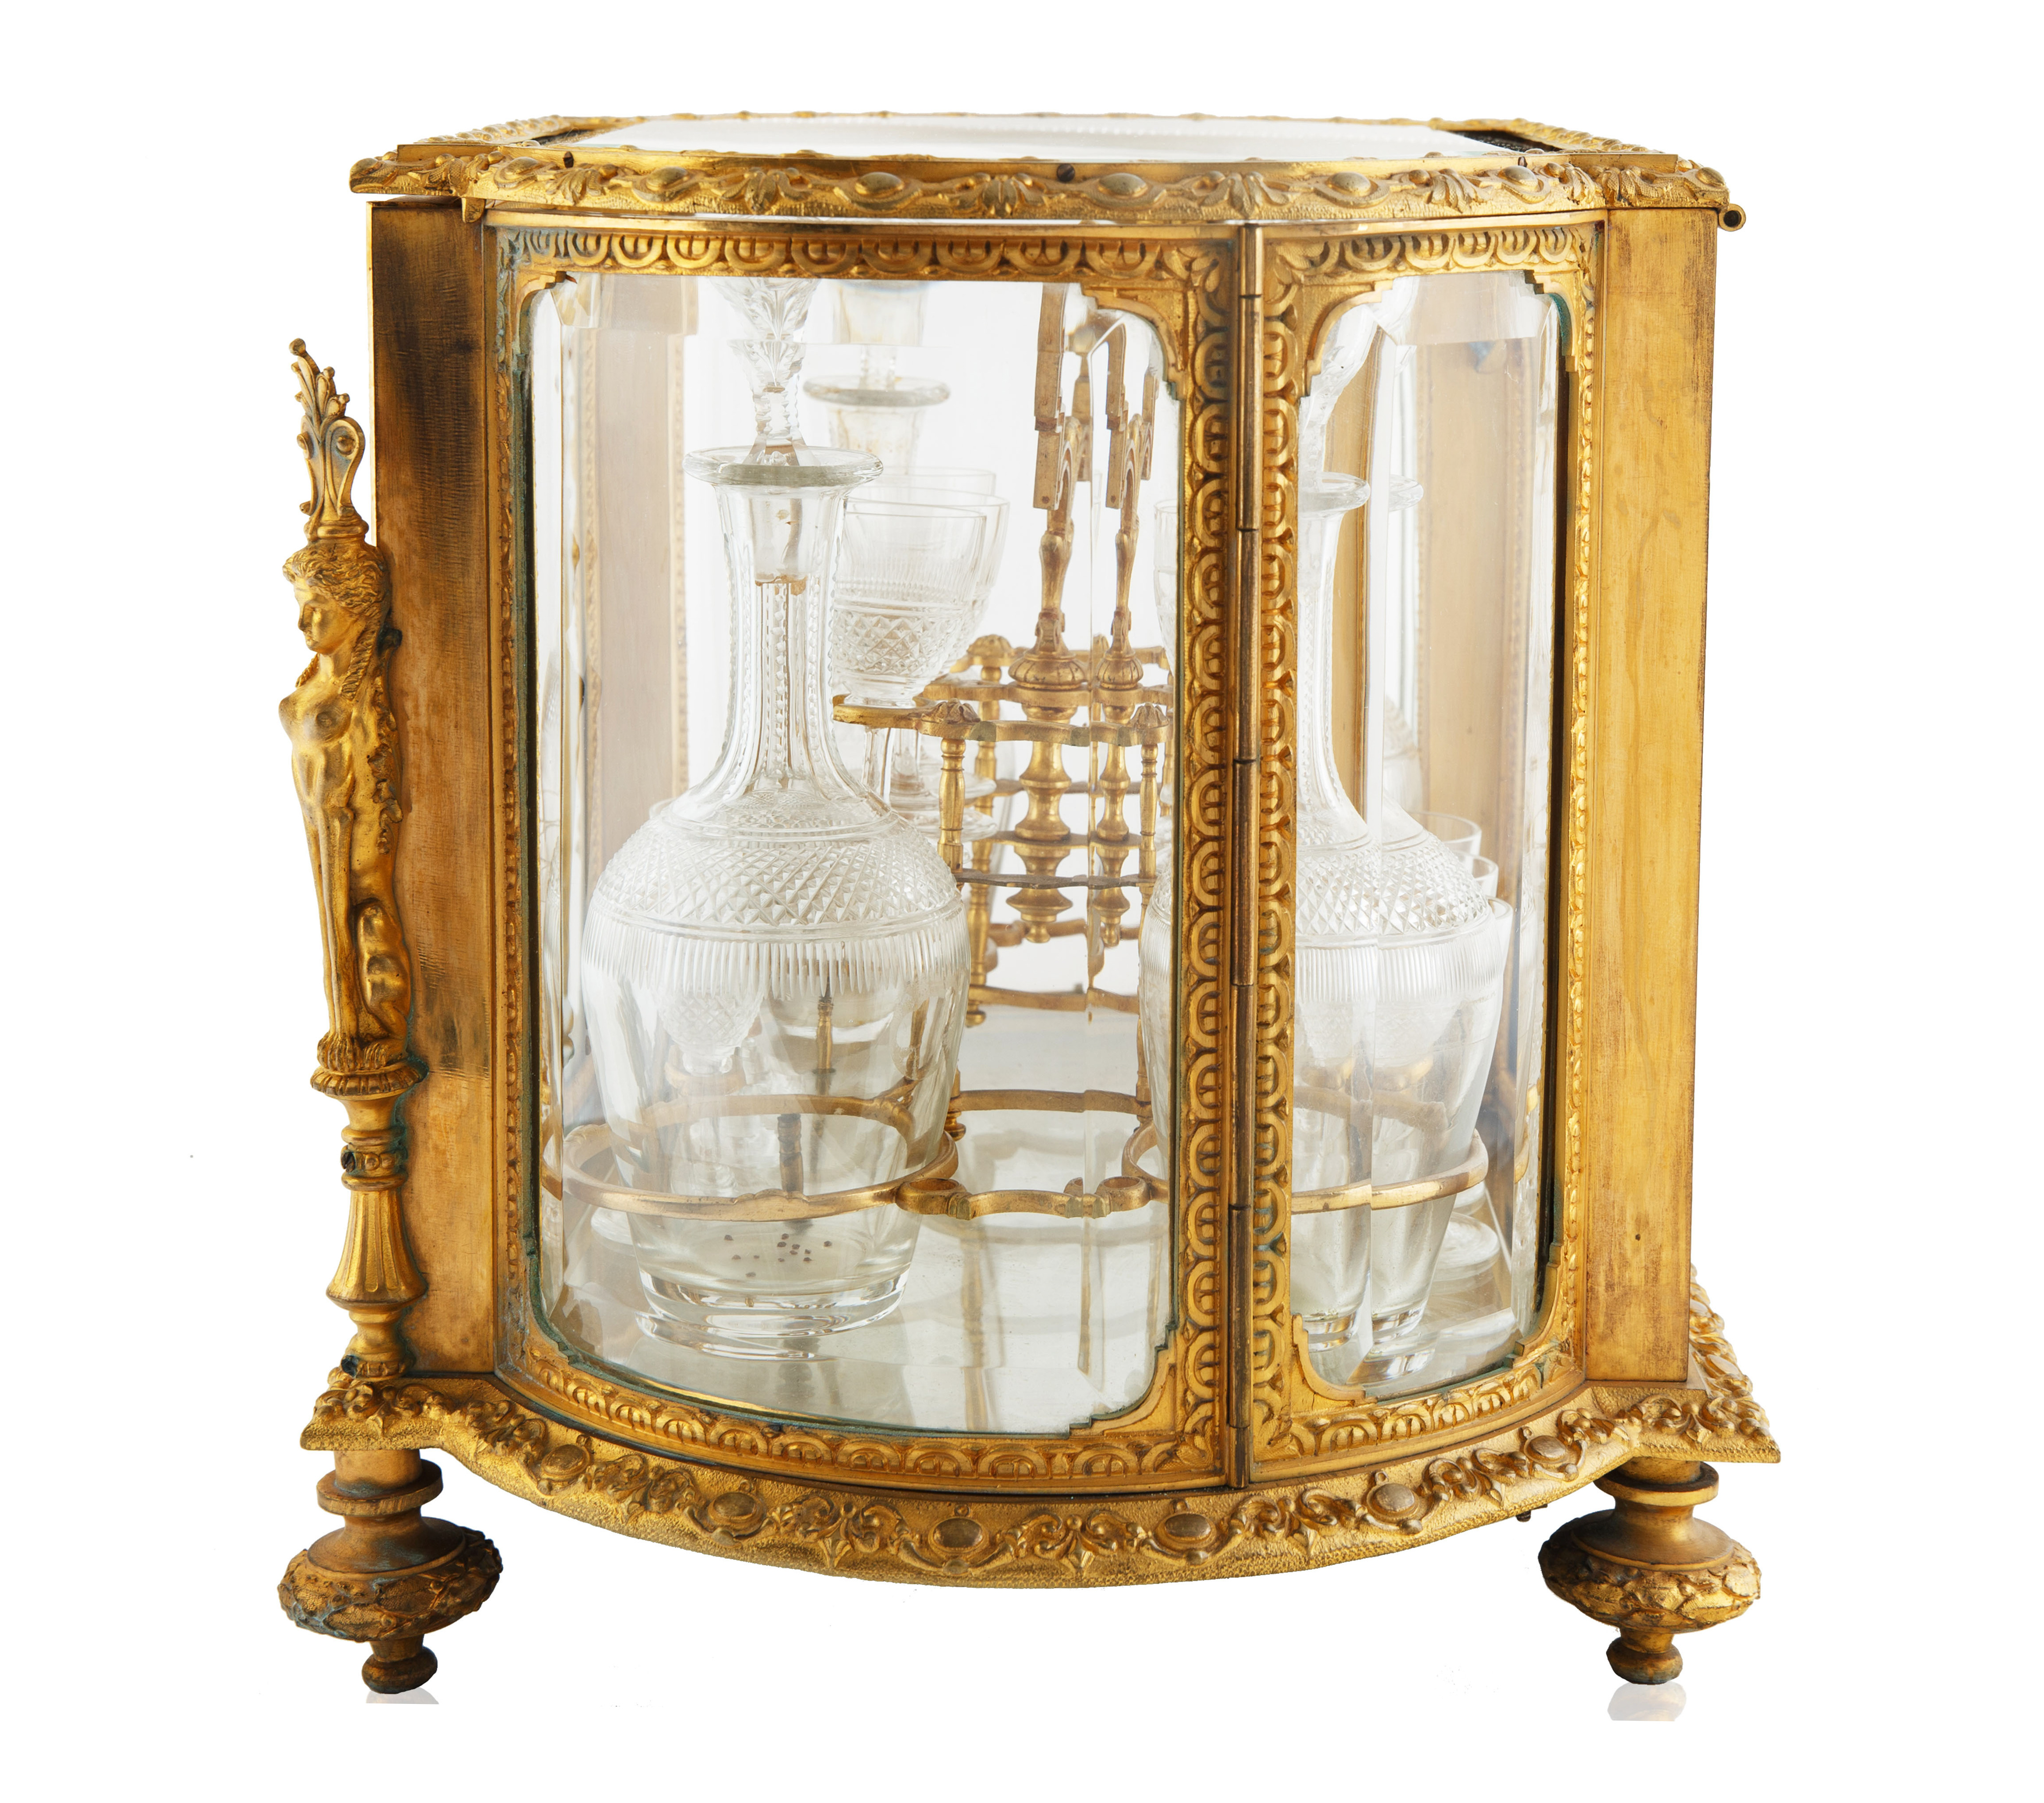 LATE 19TH-EARLY 20TH CENTURY FRENCH LOUIS XVI STYLE GILT BRONZE CAVE A LIQUEUR - Image 2 of 7